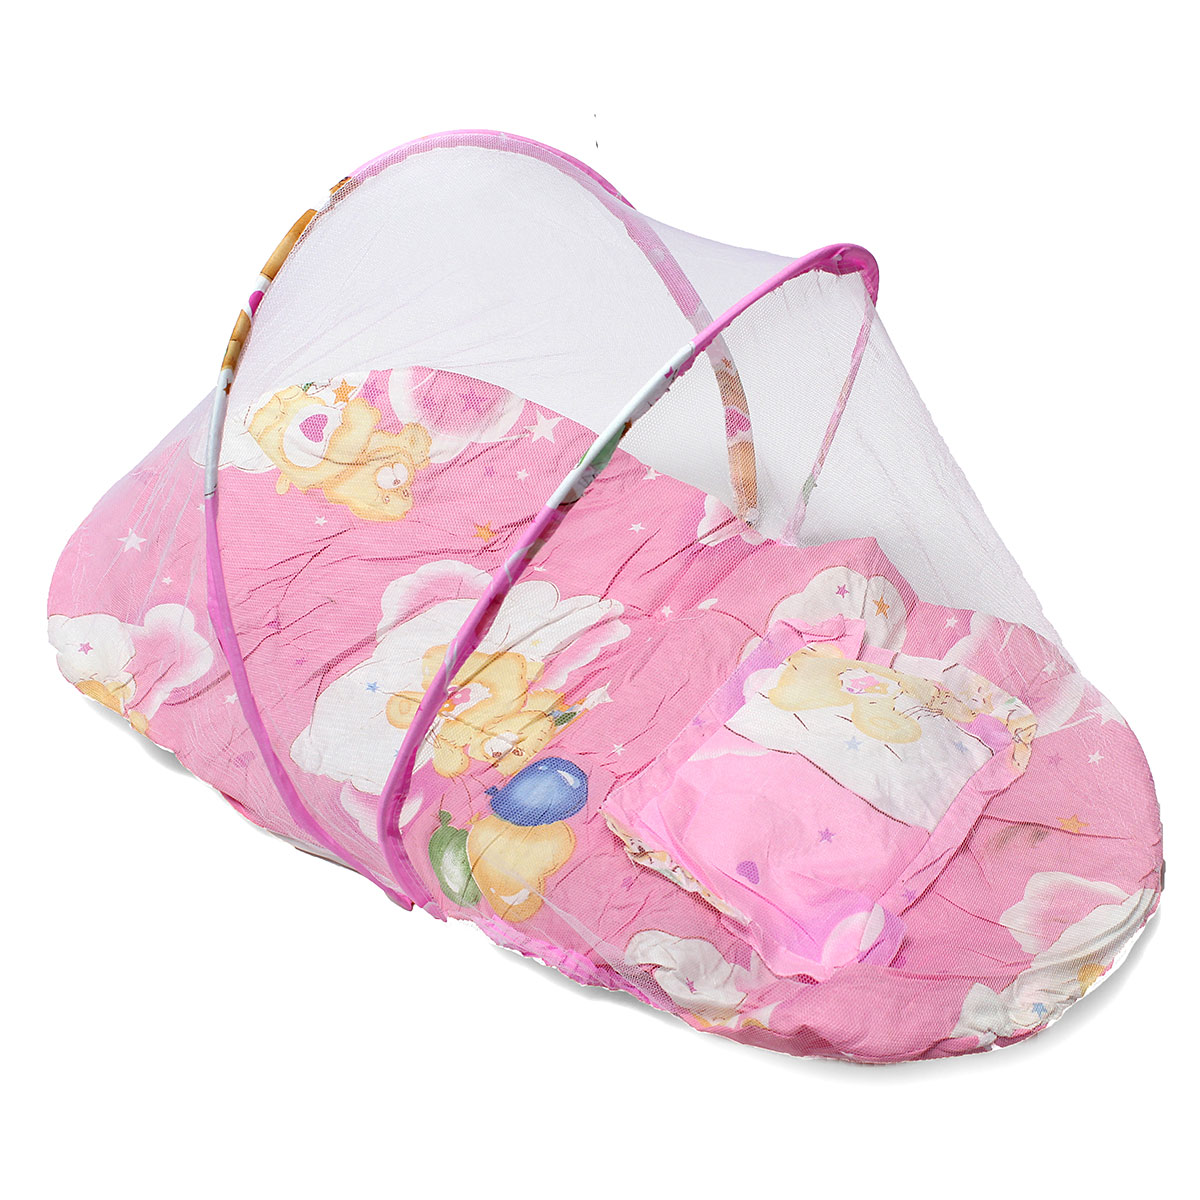 Baby bed net - Image